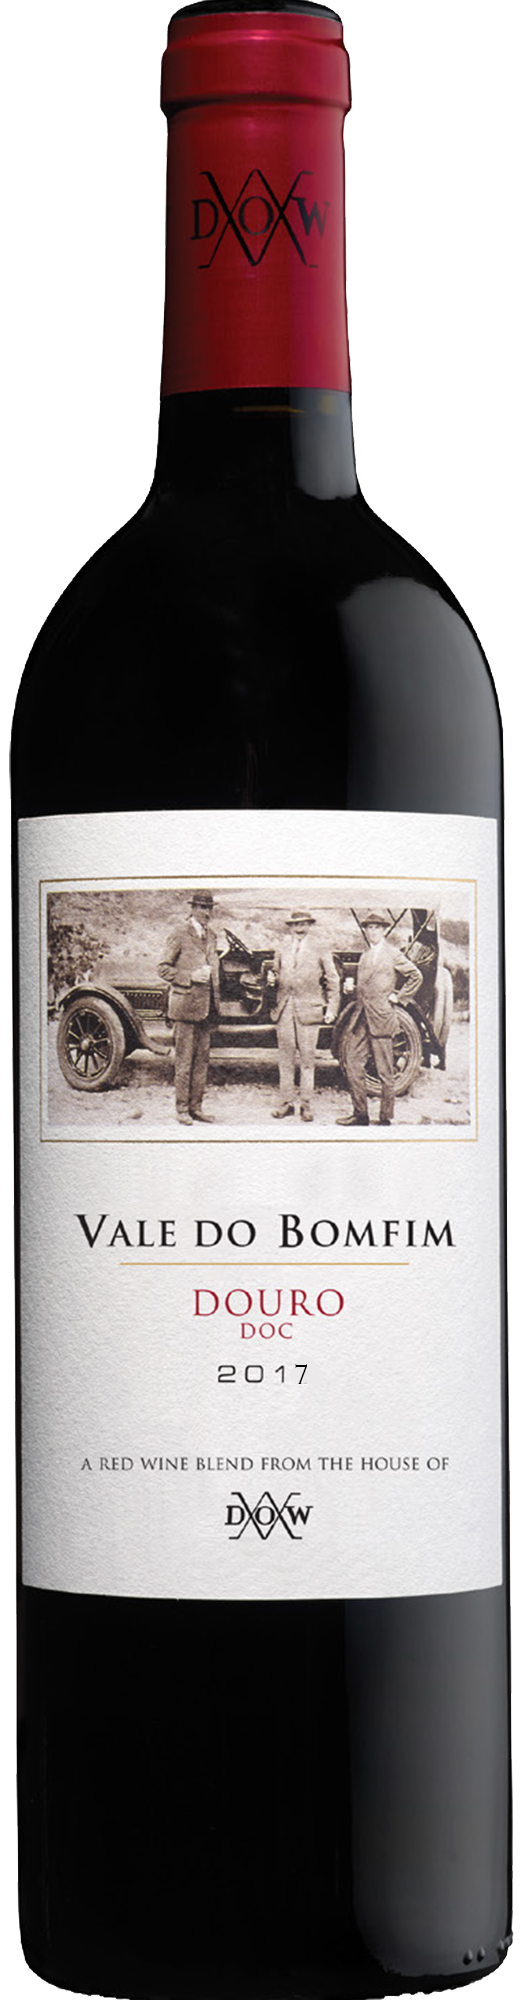 Product Image for DOW'S VALE DO BOMFIM DOURO RED 2017